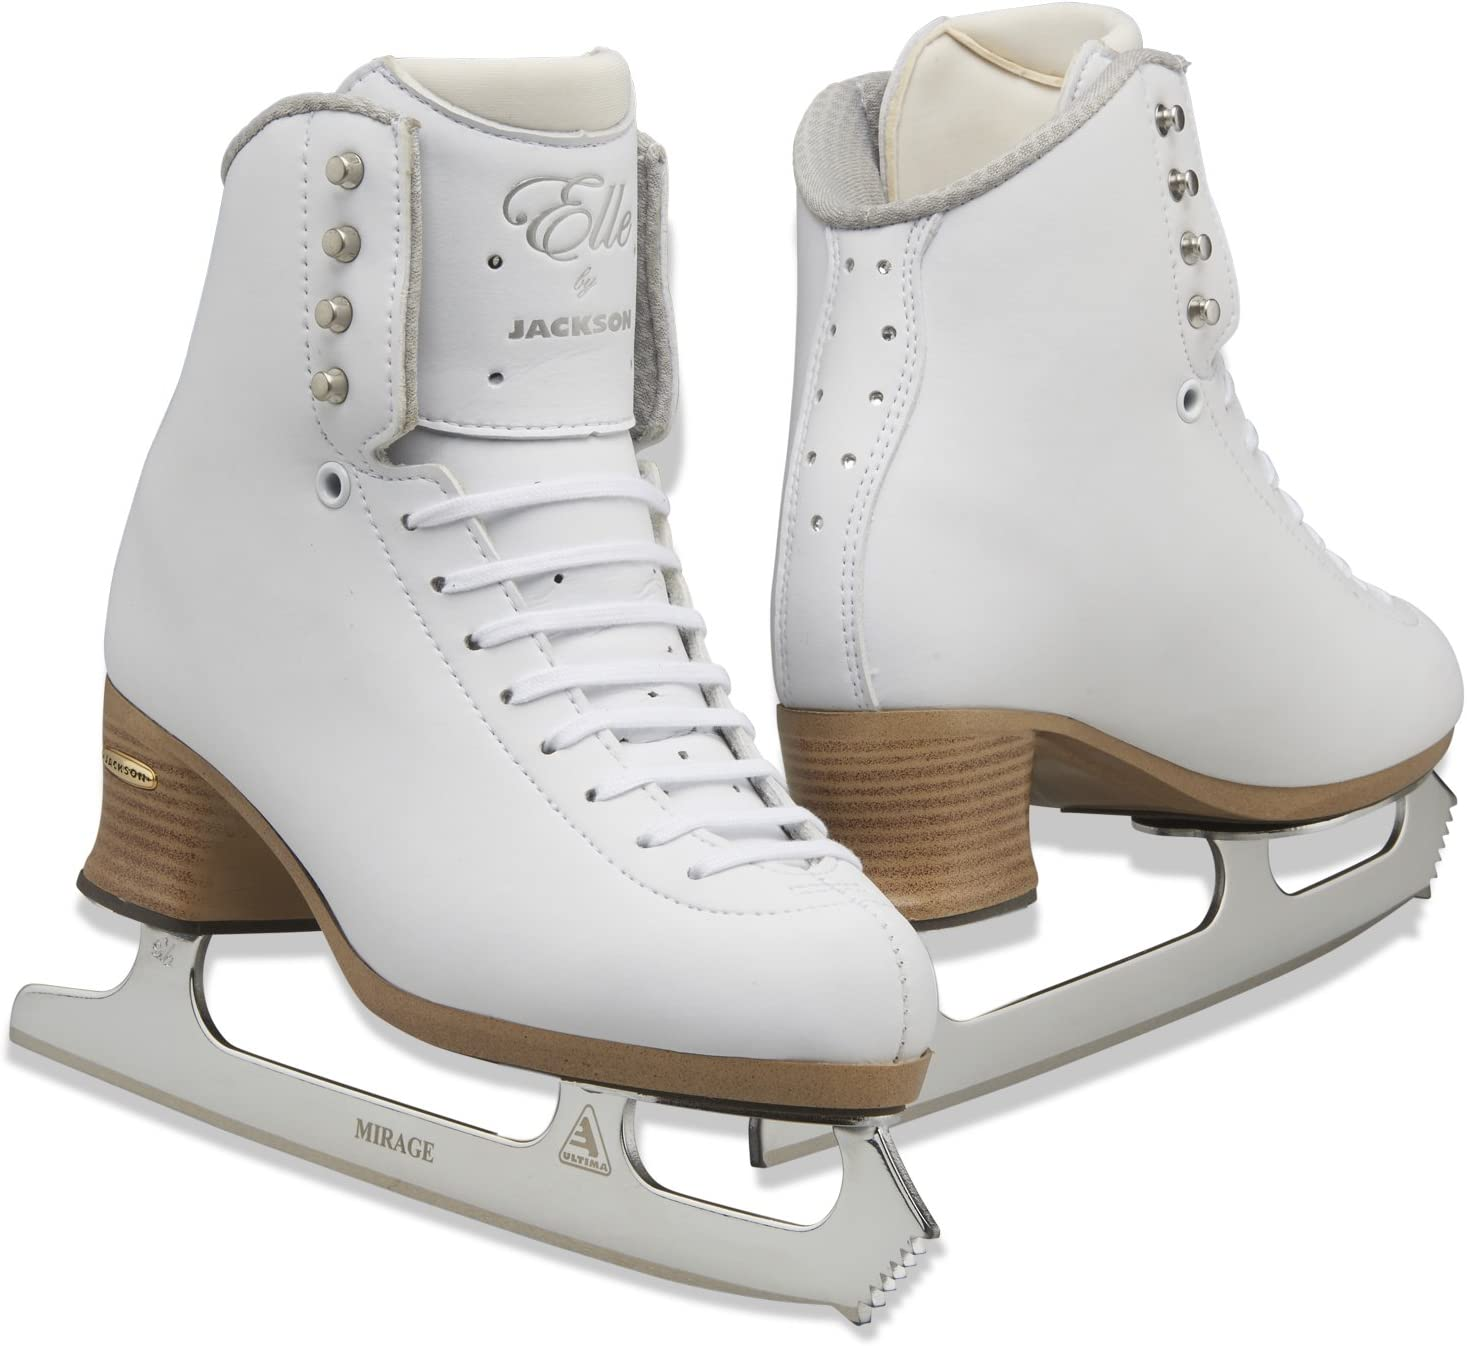 Jackson Ultima Fusion Elle and Freestyle Figure Ice Skates for Women, Men, Girls and Boys – JUST LAUNCHED 2019